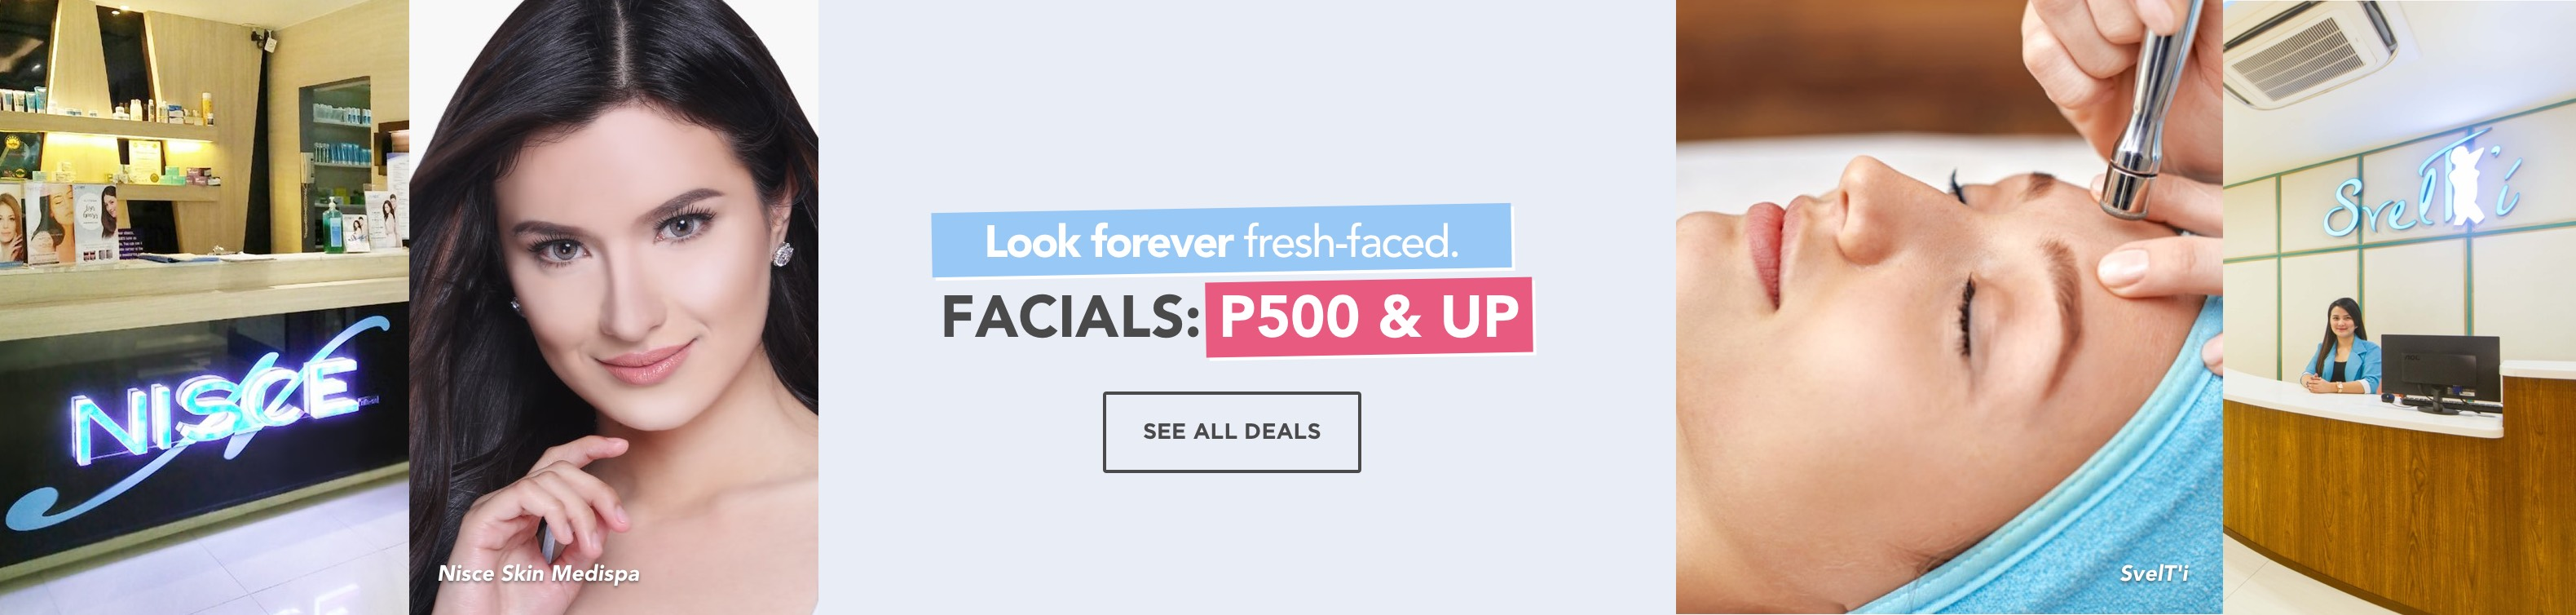 Affordable Facials: BeautyMNL